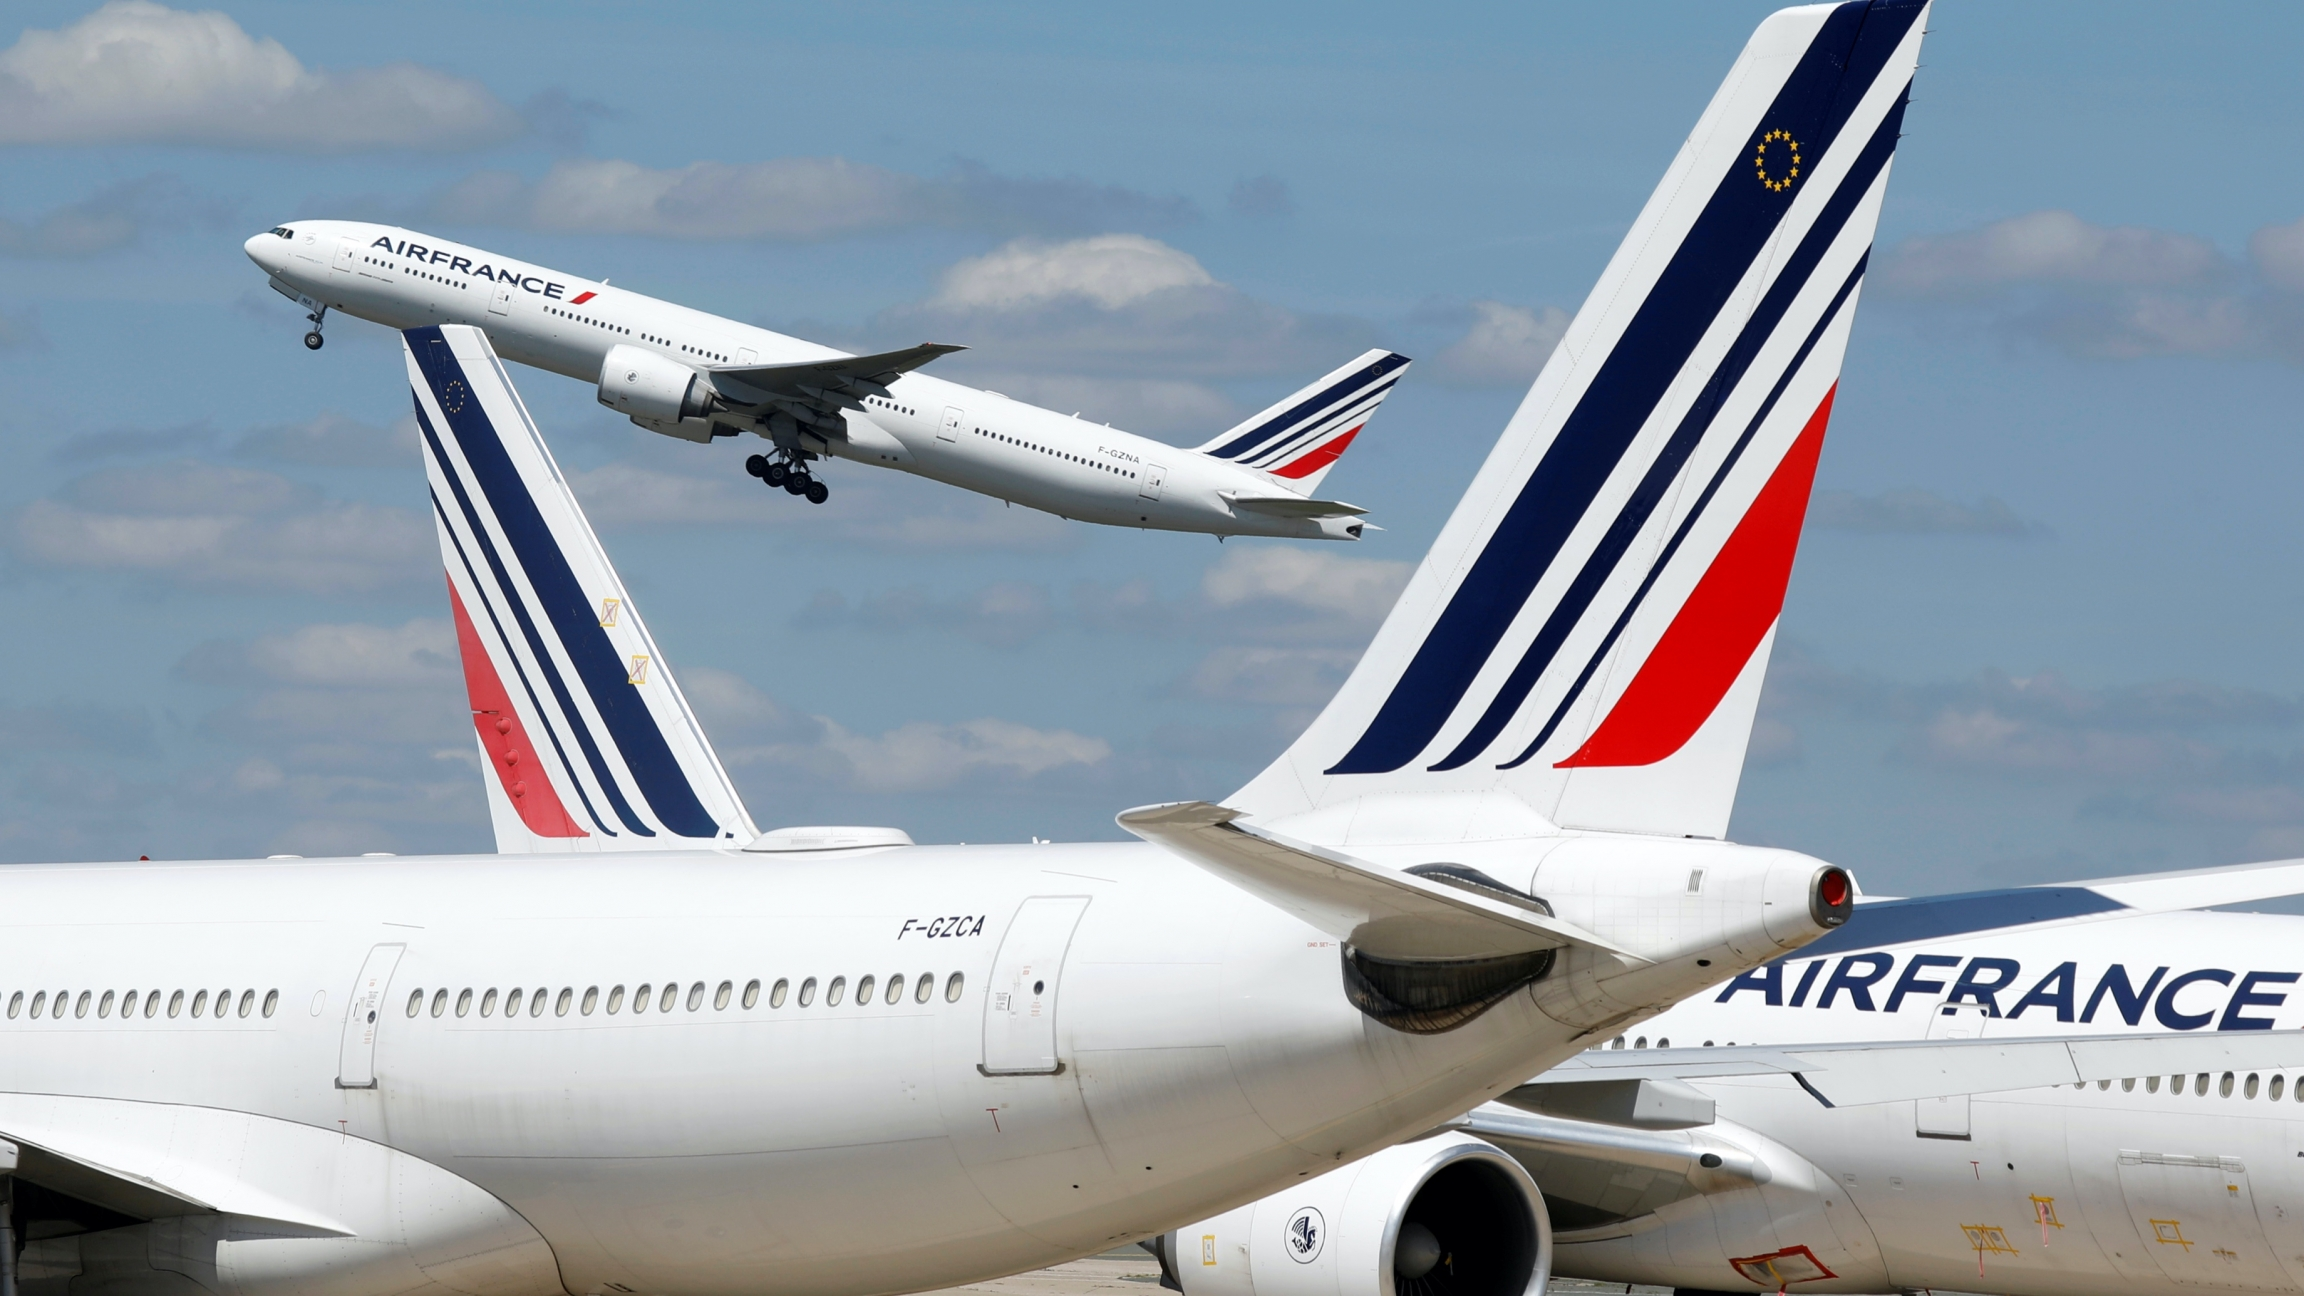 Three Air France white airplanes at the airport, one in the air